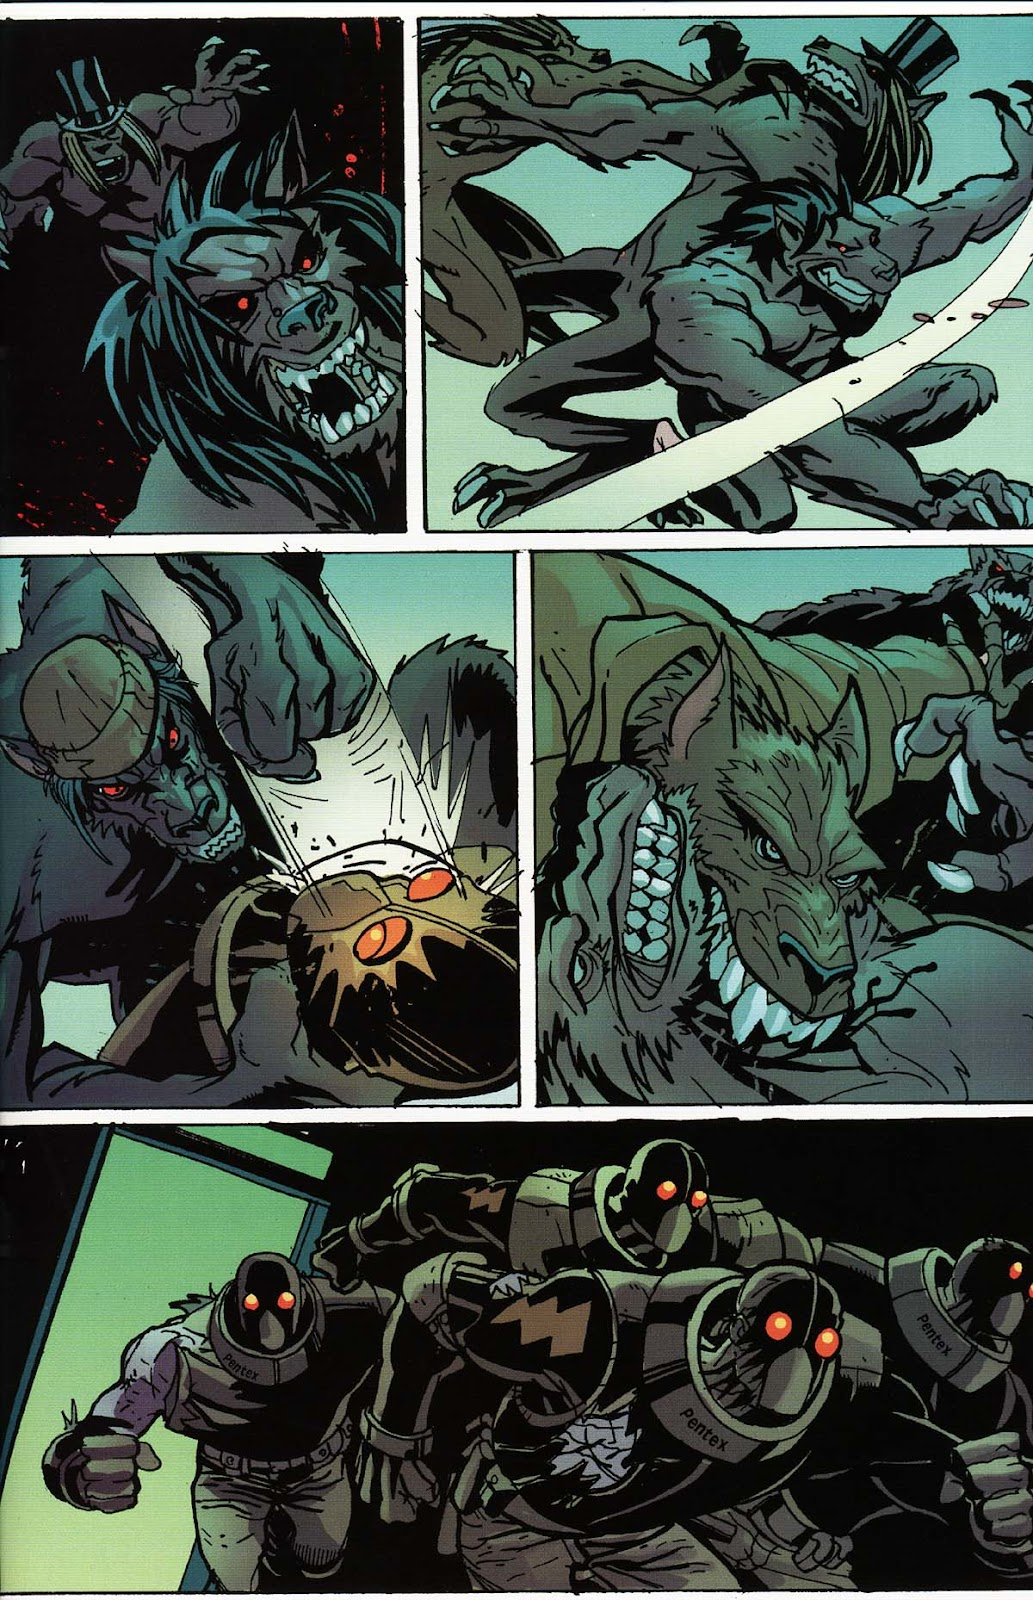 Read online Werewolf the Apocalypse comic -  Issue # Bone Gnawers - 39